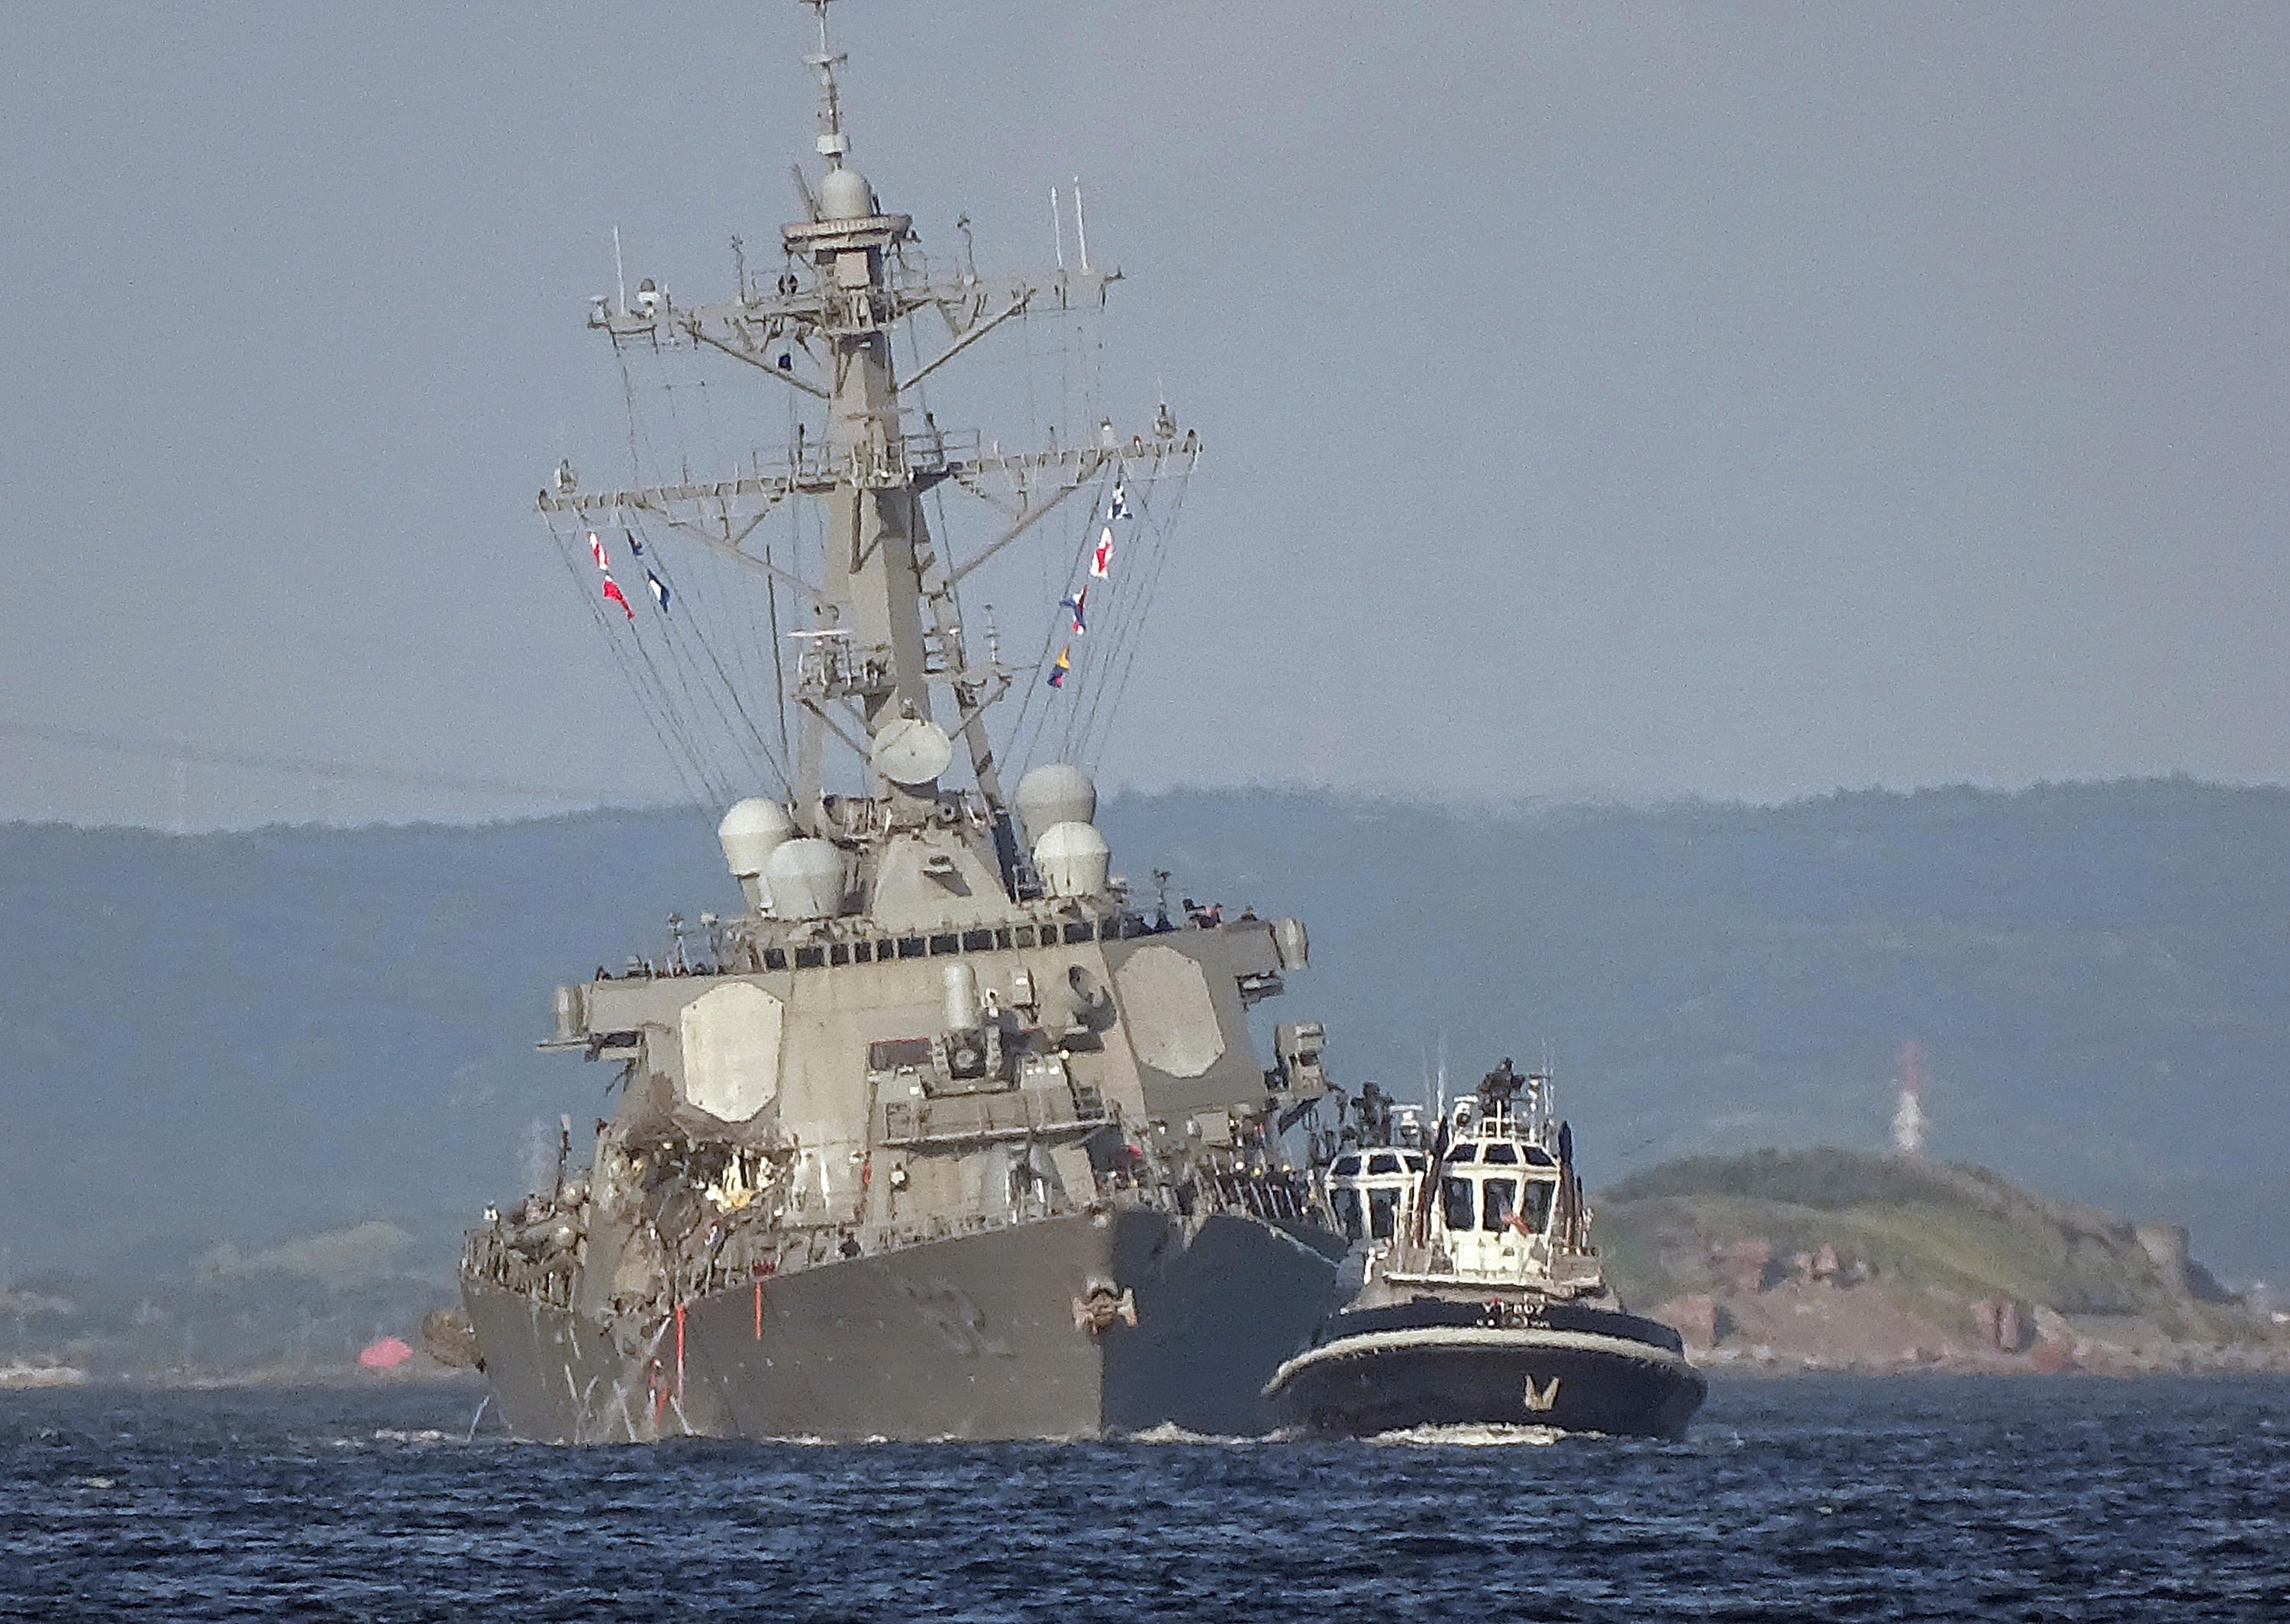 The damaged USS Fitzgerald is being towed by a tugboat in the waters near the U.S. Naval base in Yokosuka, southwest of Tokyo, after the U.S. destroyer collided with the Philippine-registered container ship ACX Crystal in the waters off the Izu Peninsula Saturday, June 17, 2017. The USS Fitzgerald was back at its home port in Japan after colliding before dawn Saturday with the container ship four times its size, while the coast guard and Japanese and U.S. military searched for seven sailors missing after the crash. (AP Photo/Eugene Hoshiko)